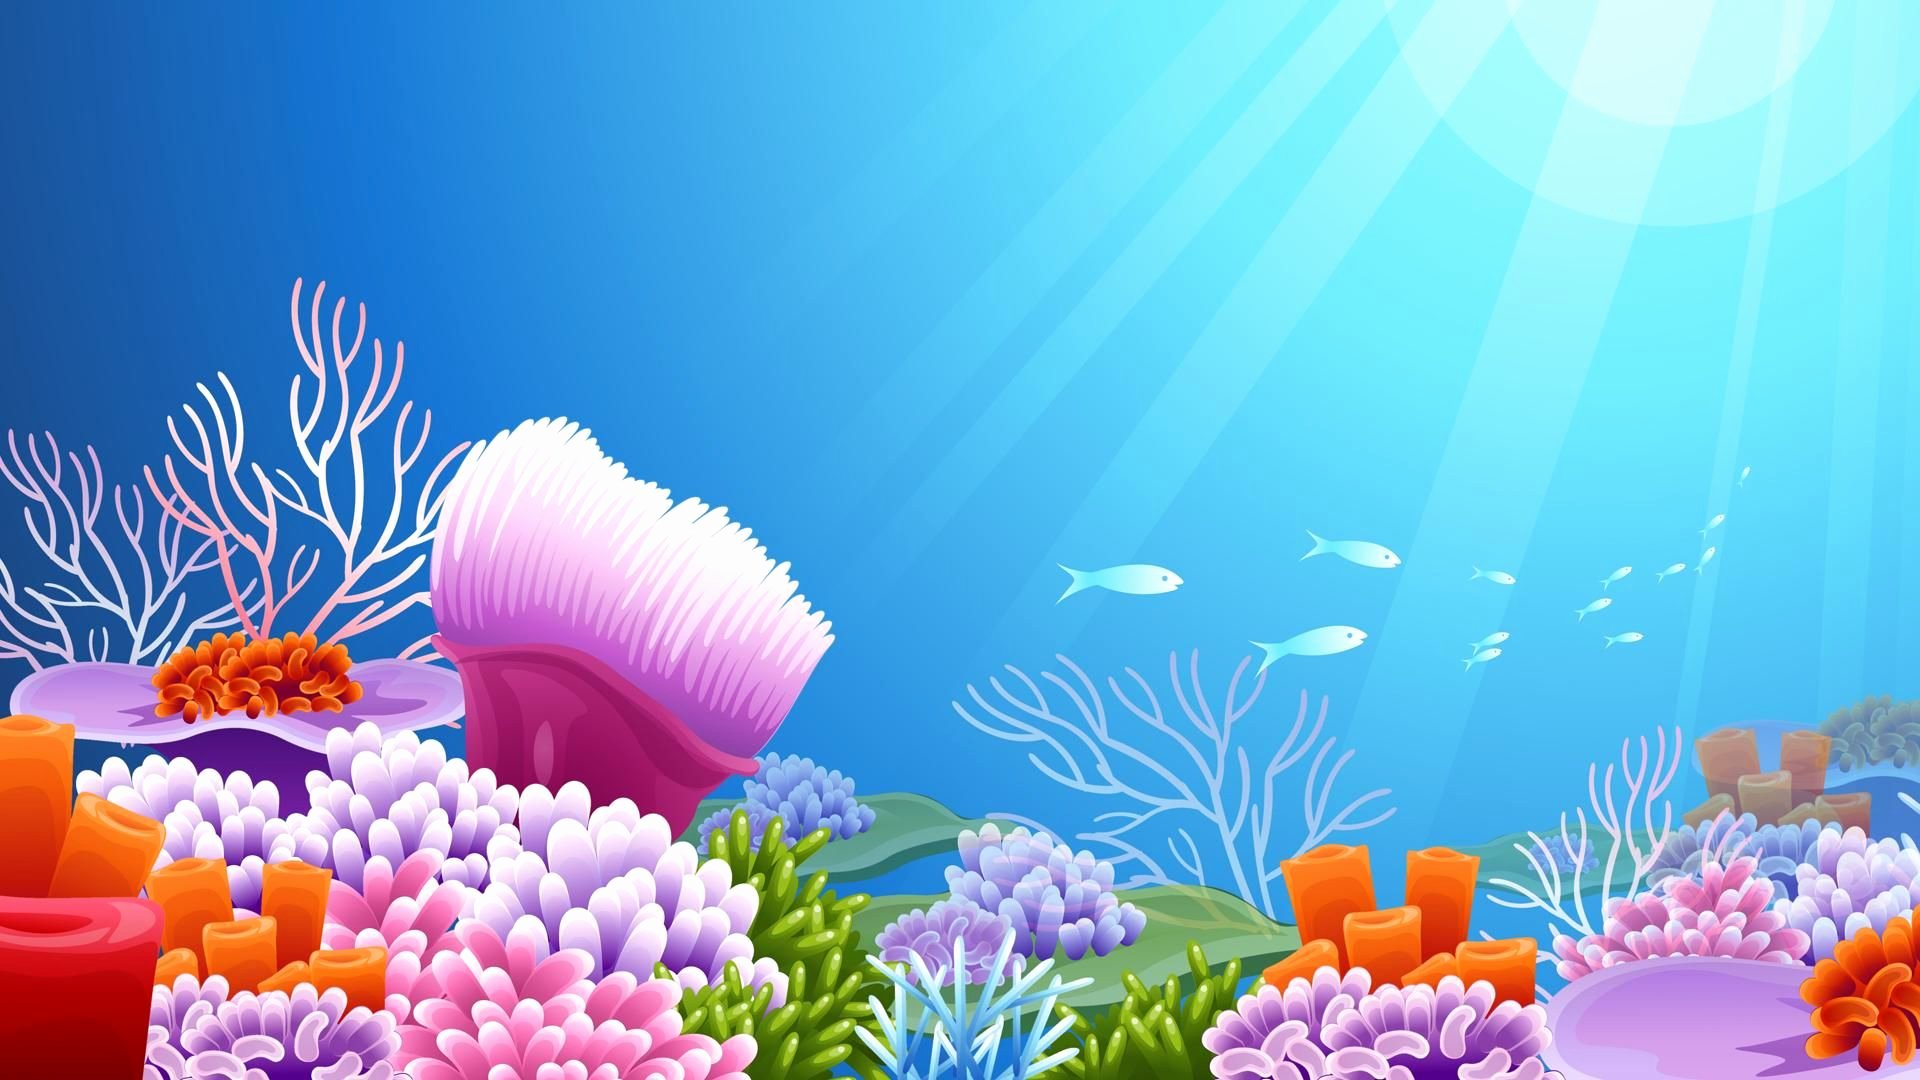 Fish Tank Background Printable Inspirational Image for Under Sea Wallpaper Mobile F62te